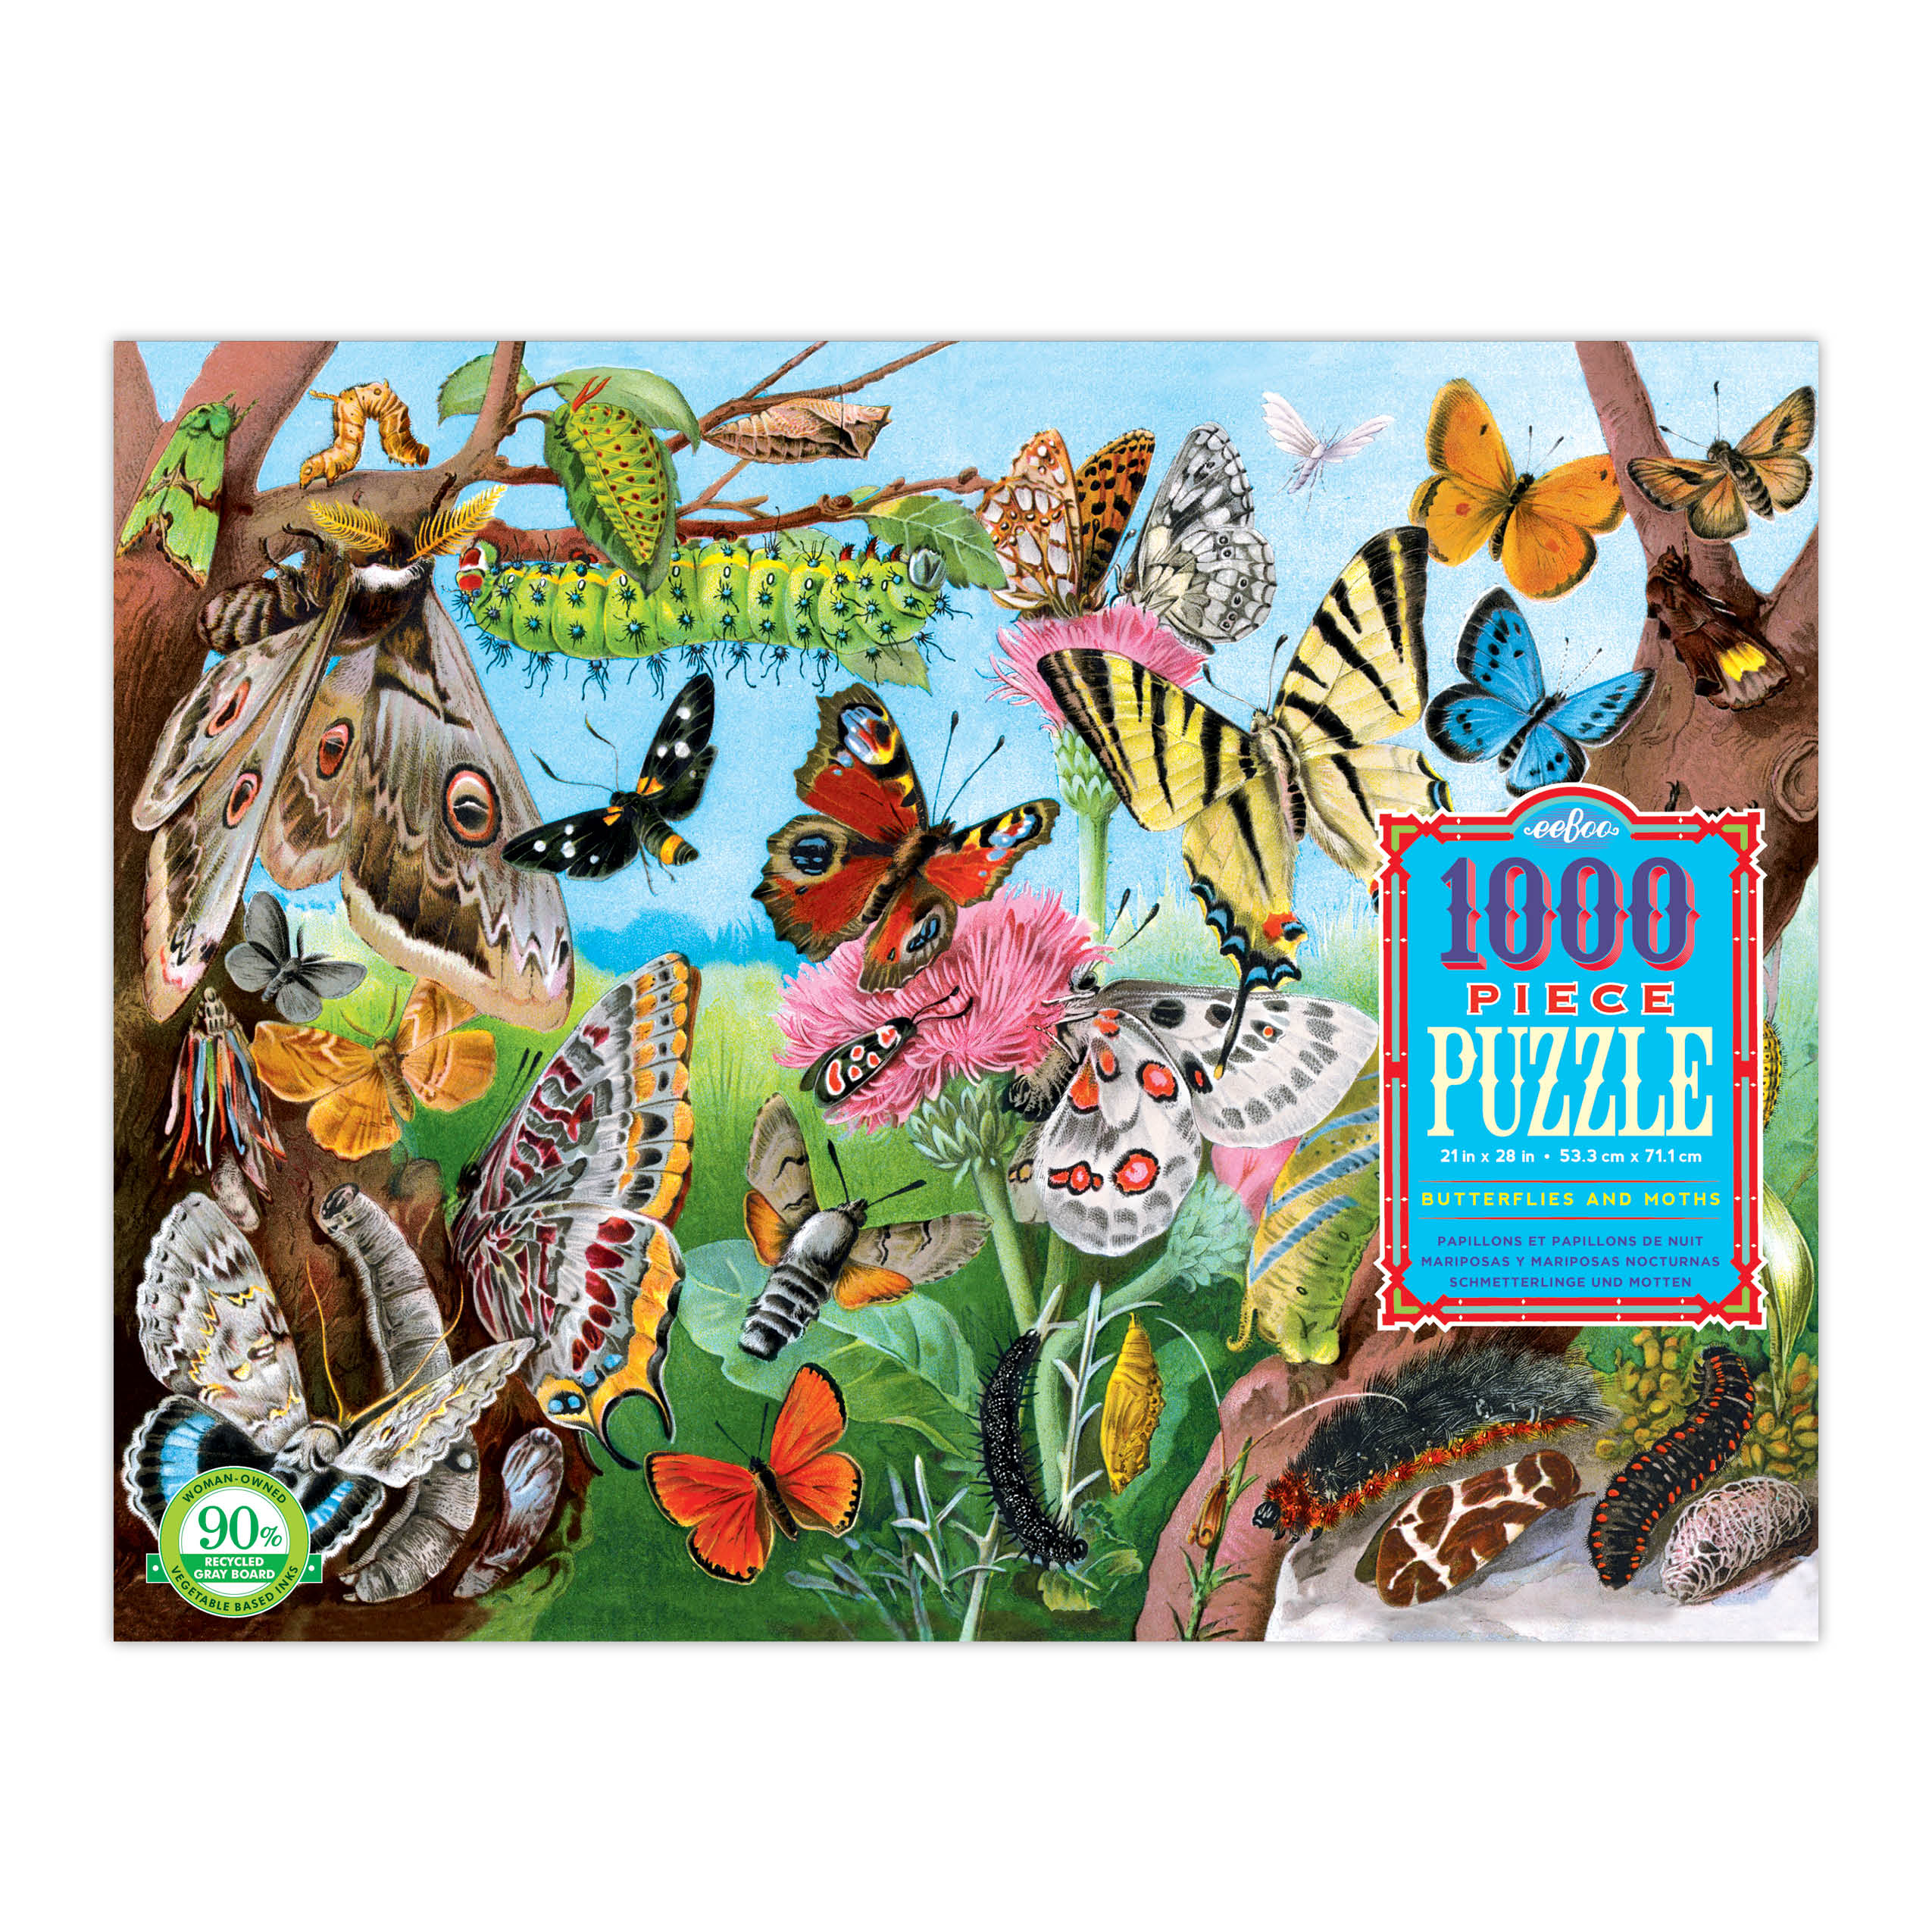 butterflies and moths puzzle - 1000 piece